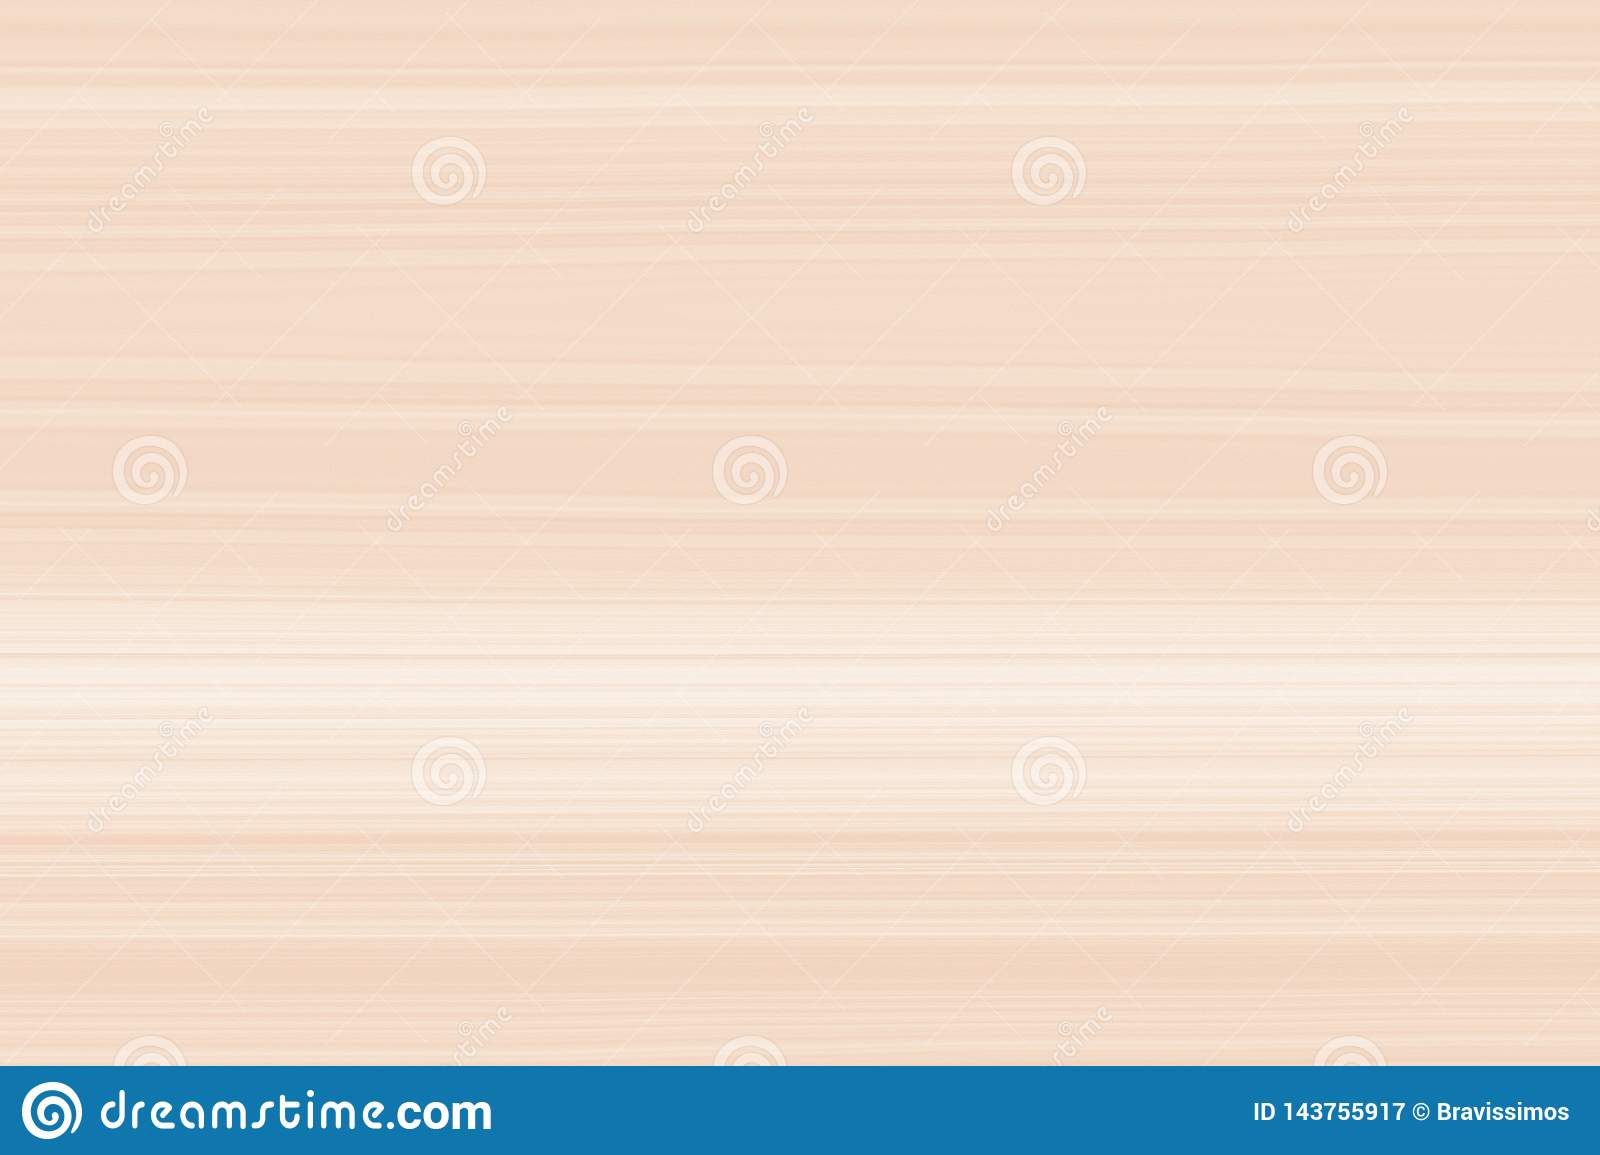 Download Wallpaper Blank White Background